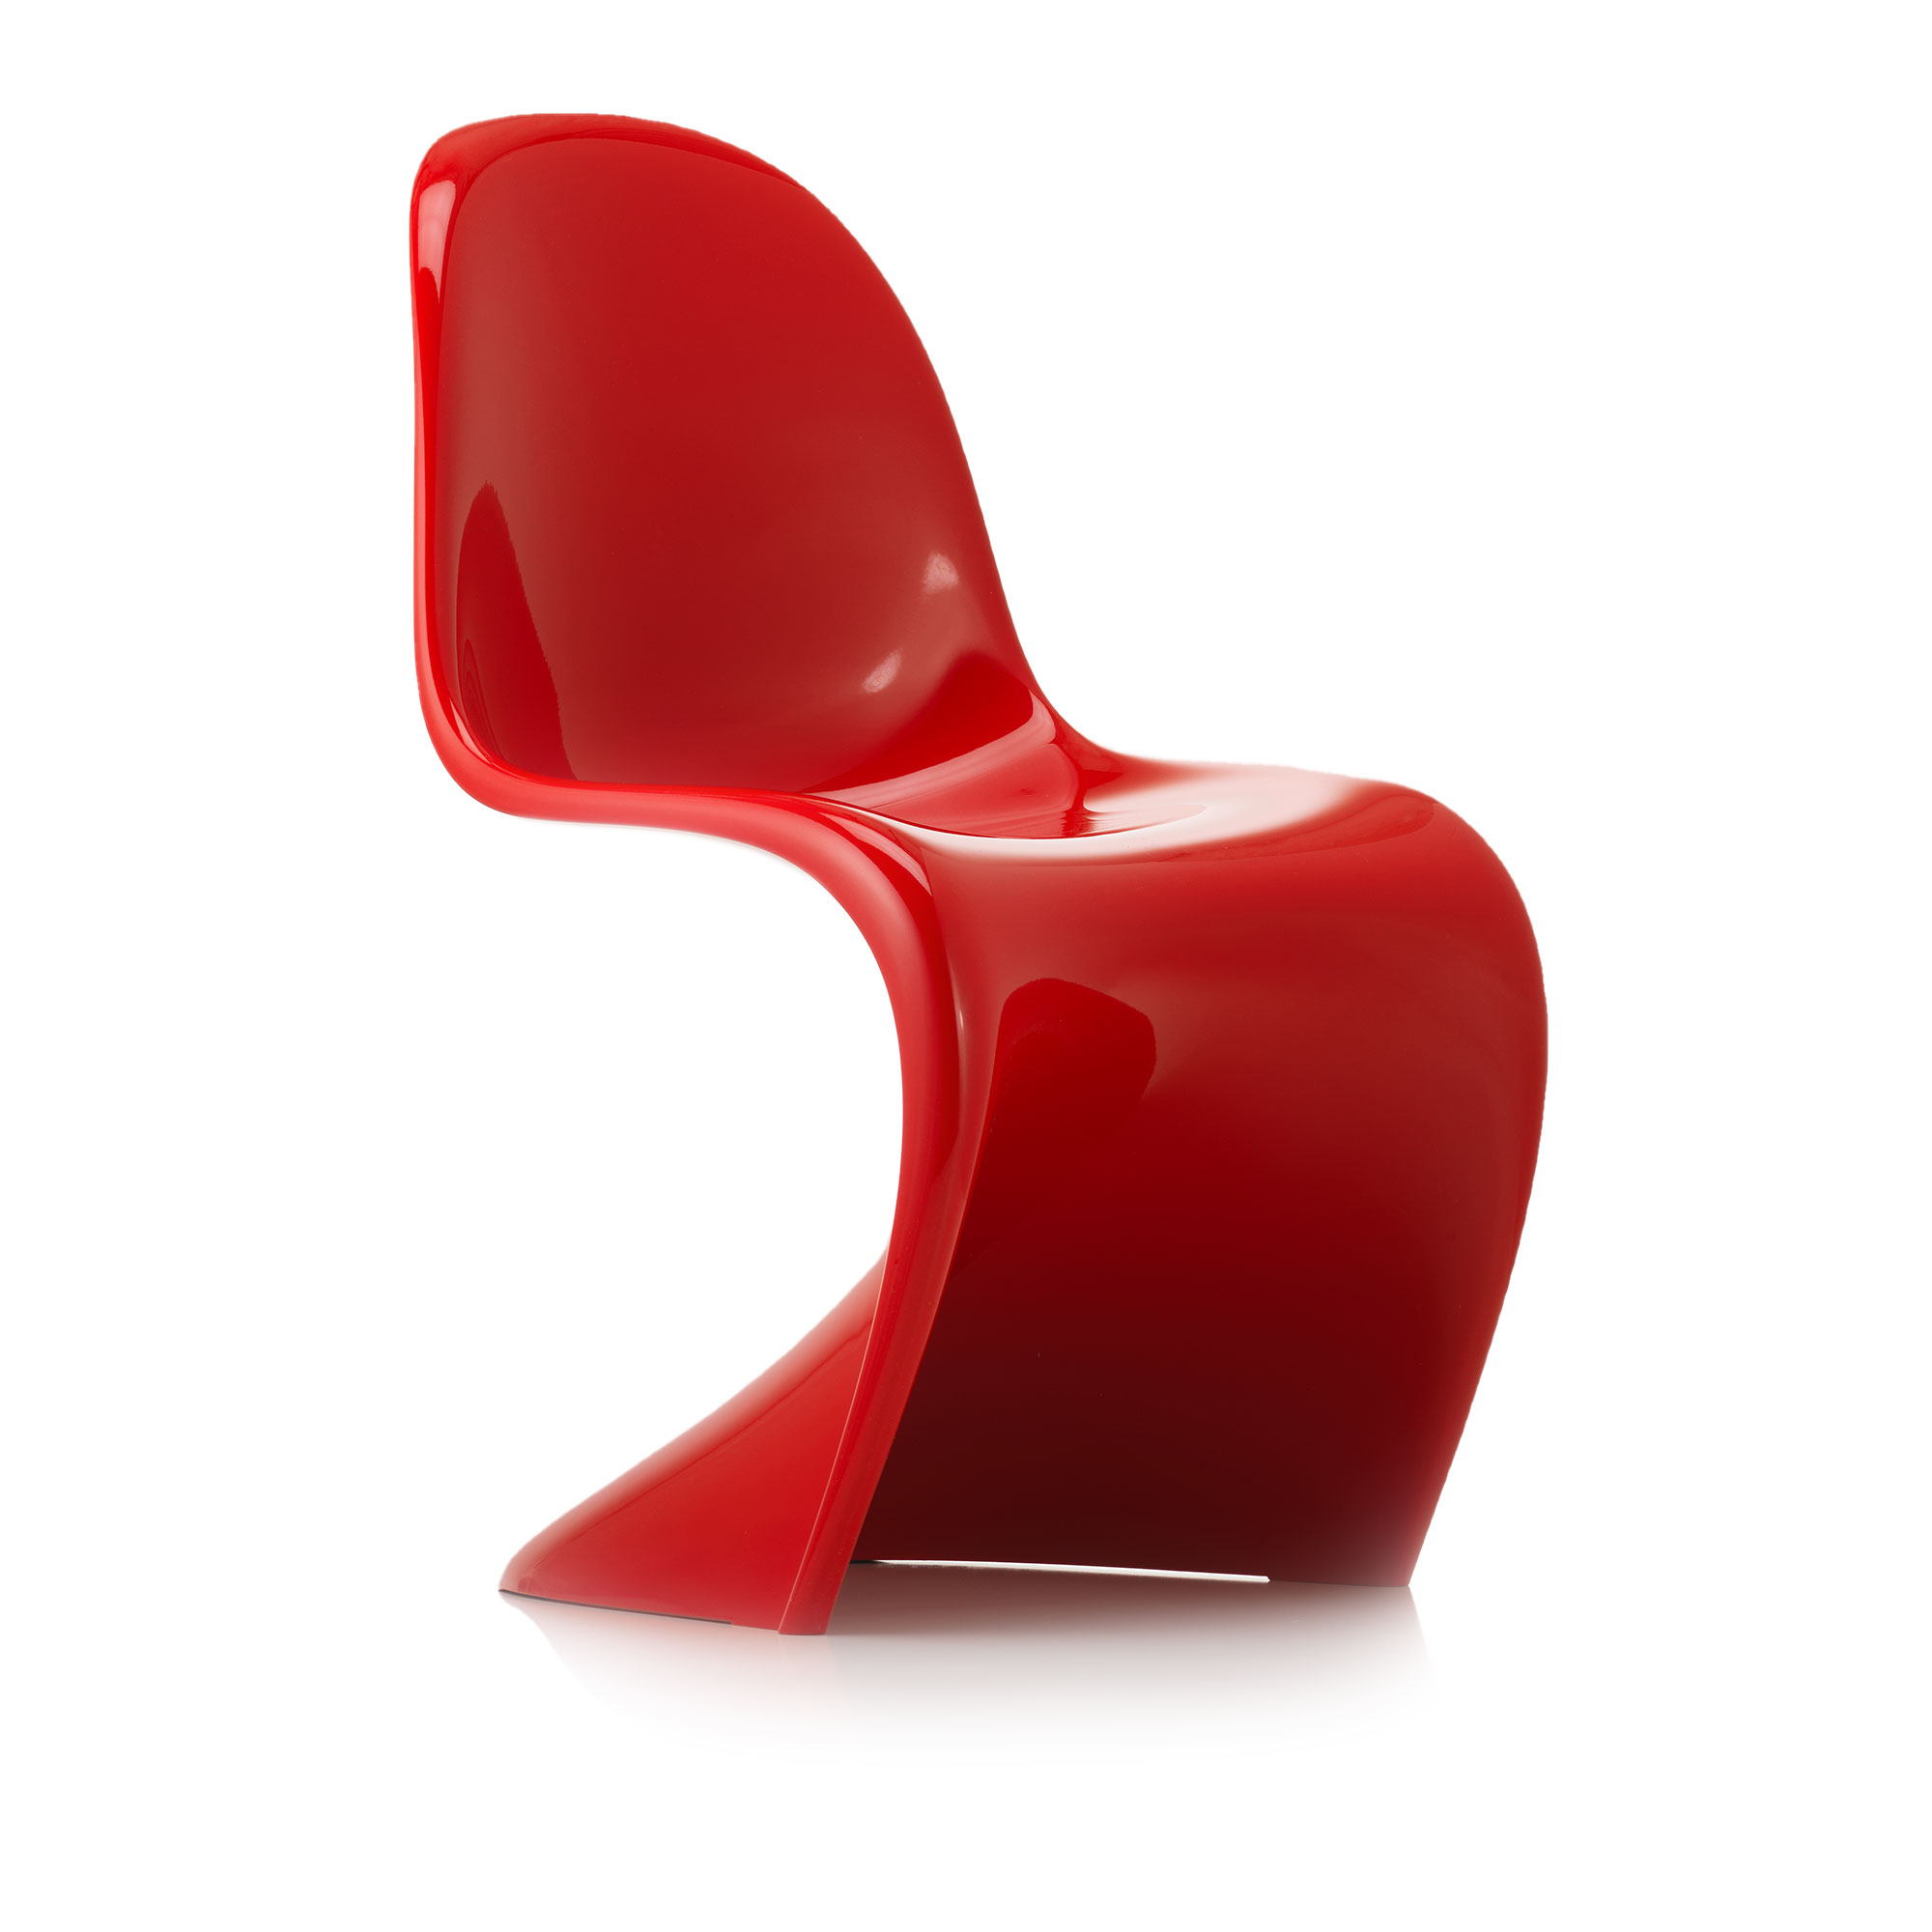 k p panton chair classic fr n vitra nordiska galleriet. Black Bedroom Furniture Sets. Home Design Ideas